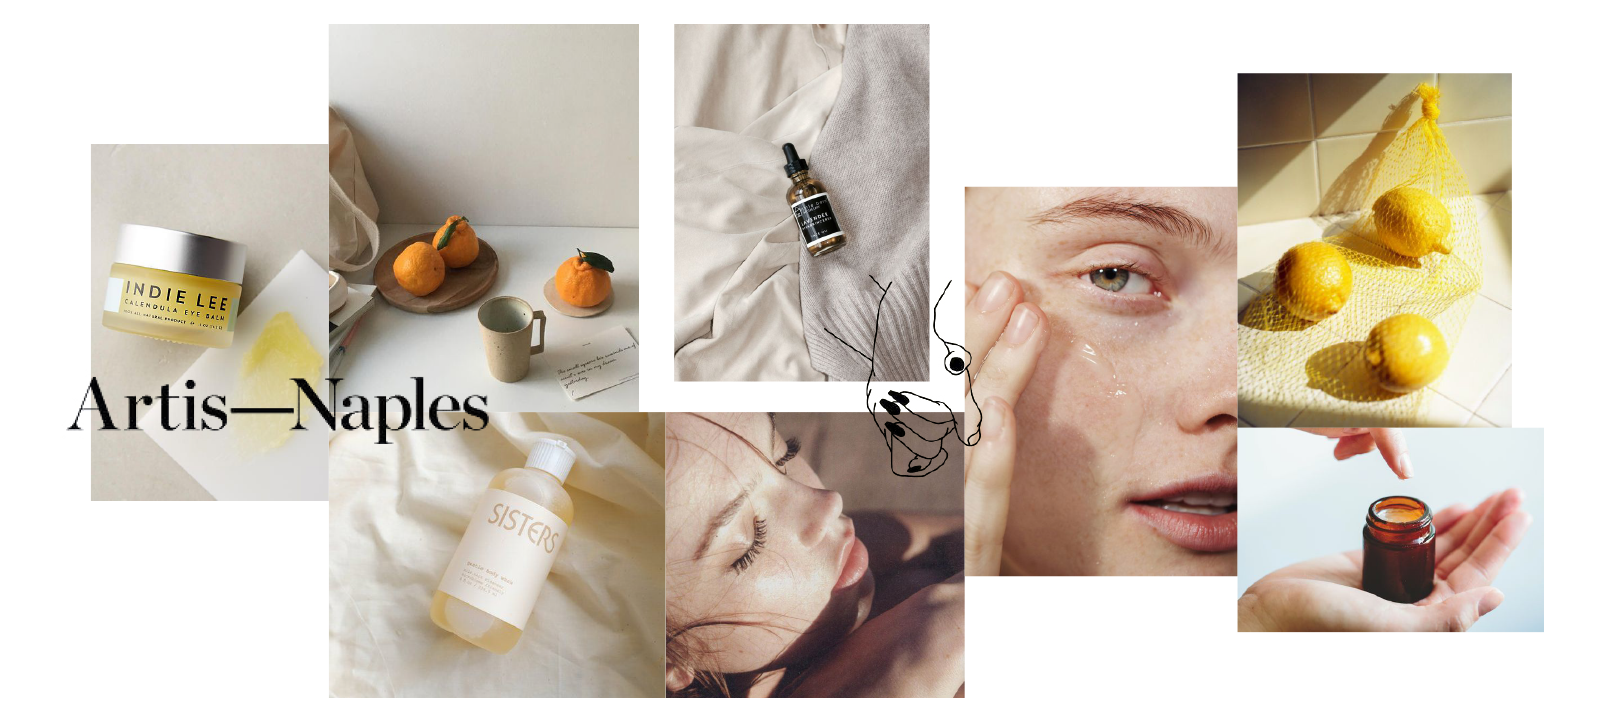 Moodboard selected from our concept phase